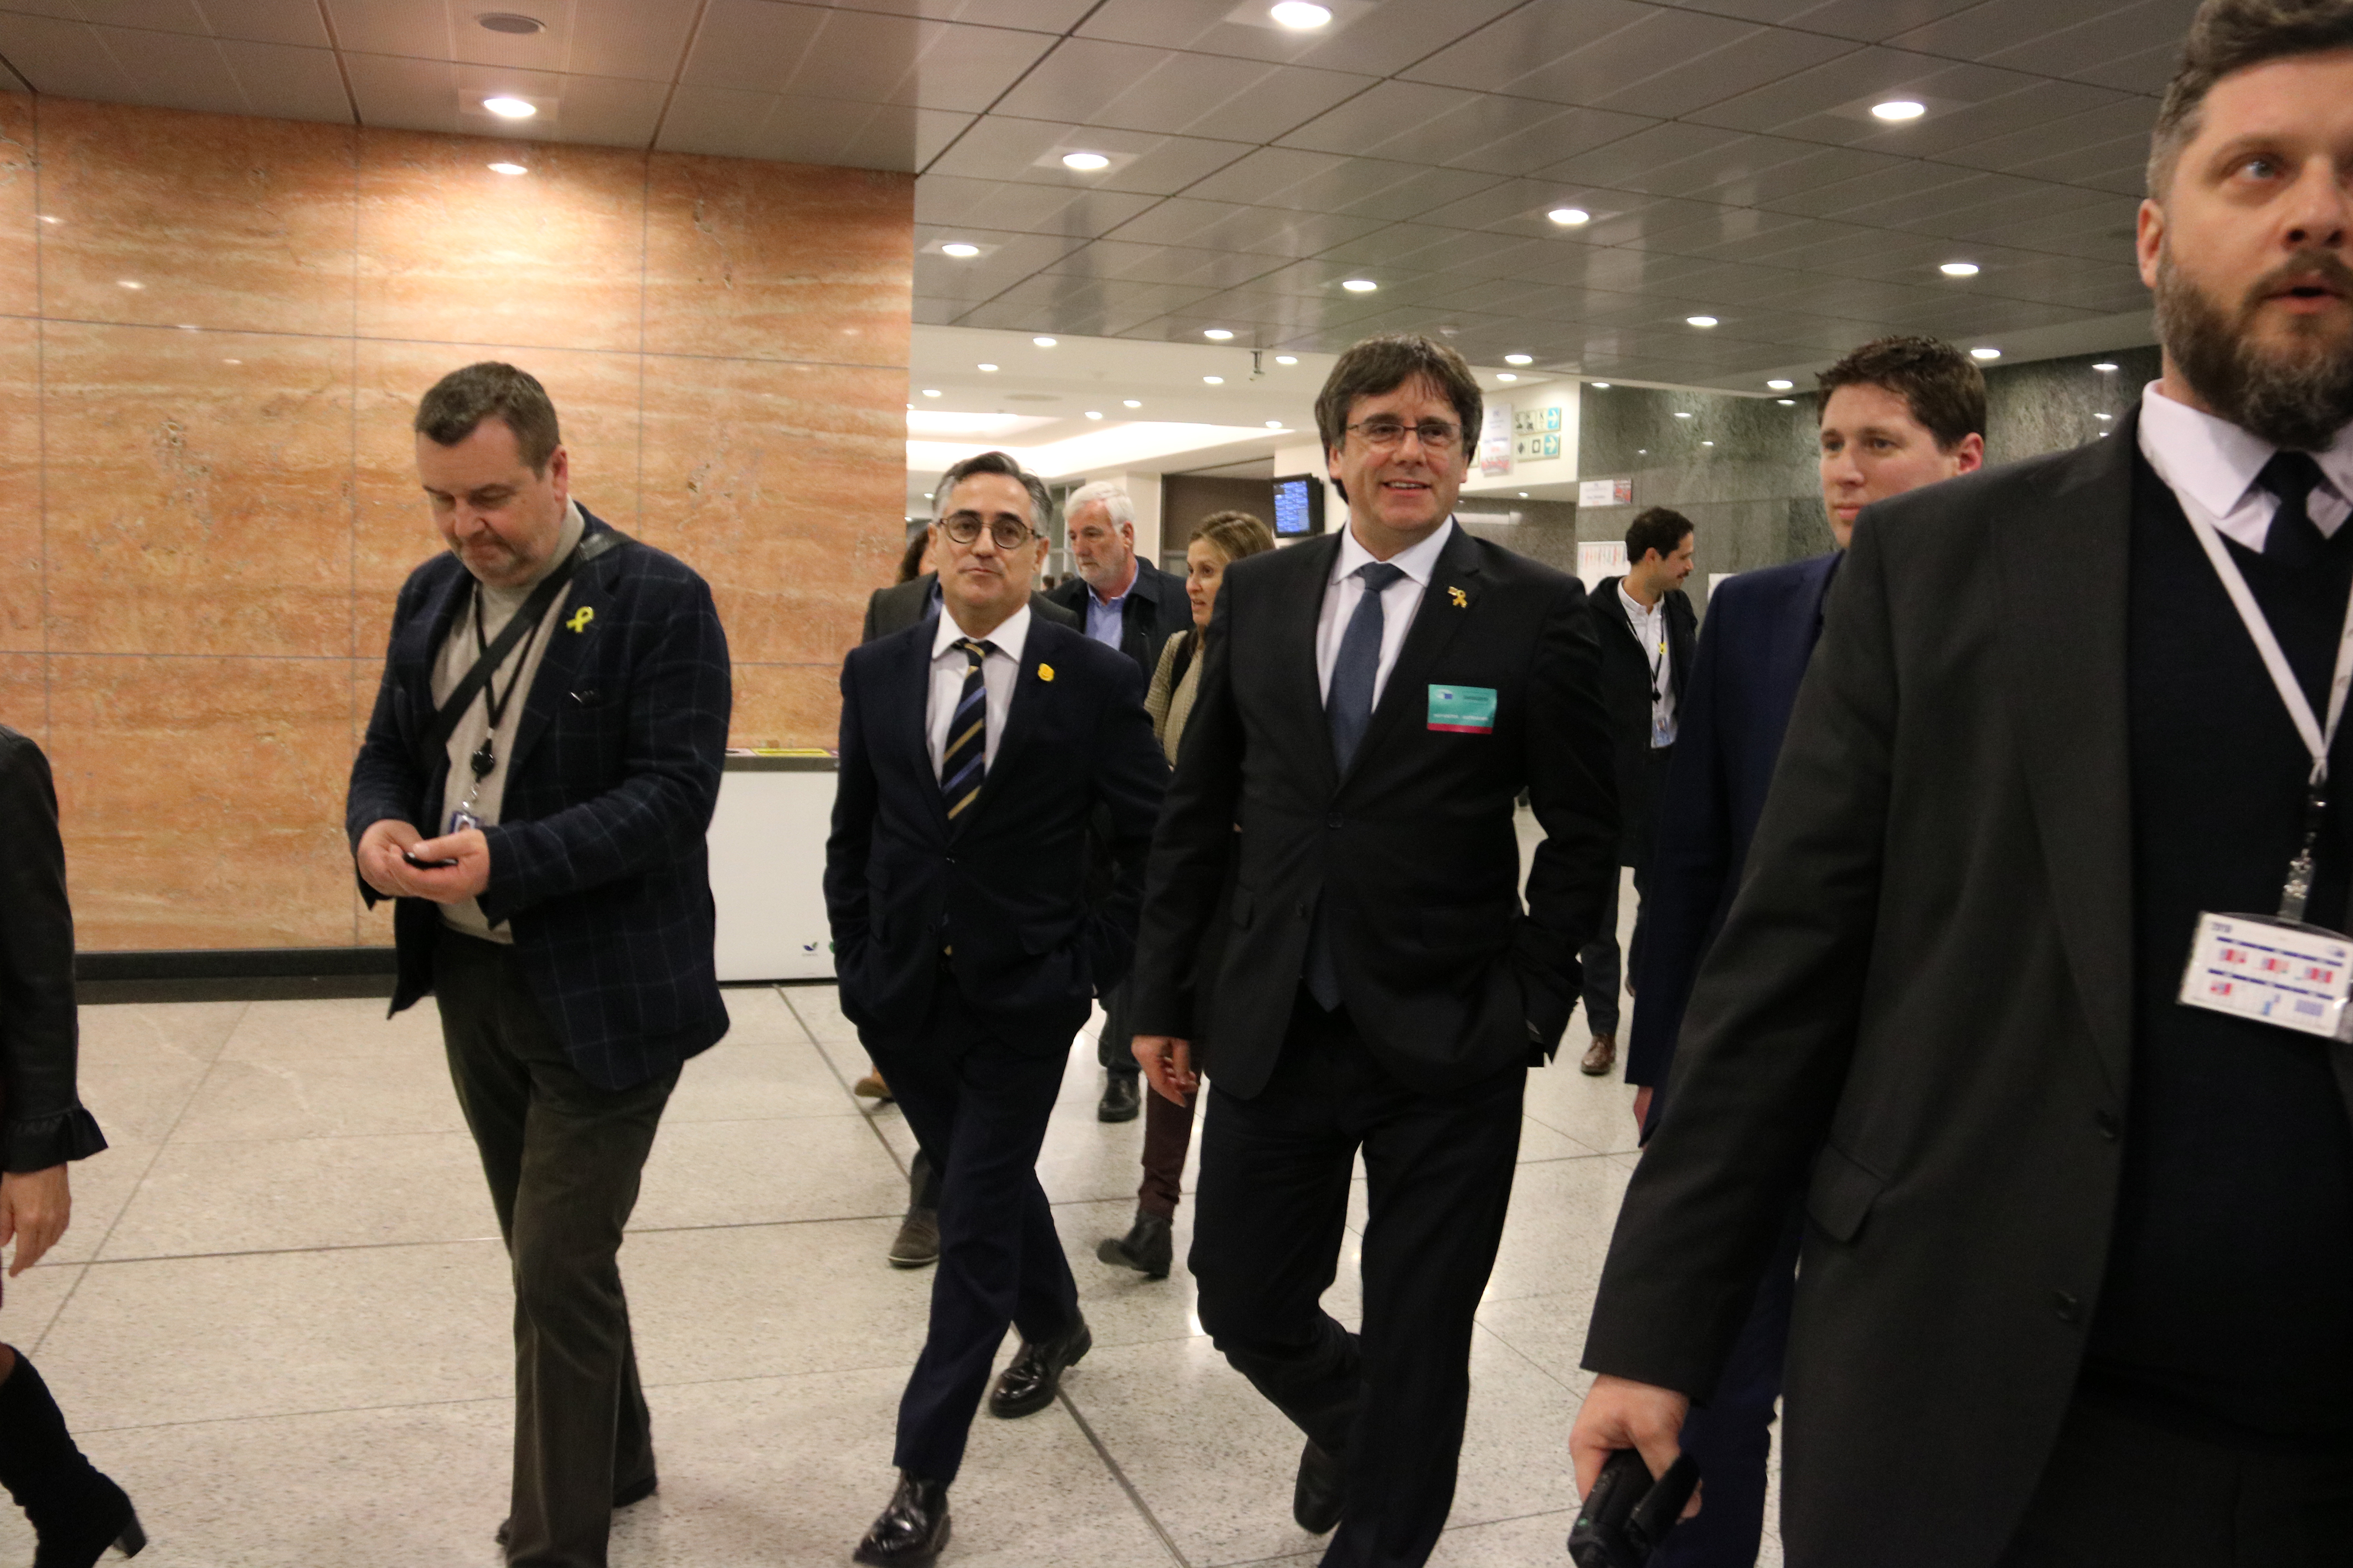 Former Catalan president Carles Puigdemont visits the European Parliament on March 4, 2019 (by Natàlia Segura)